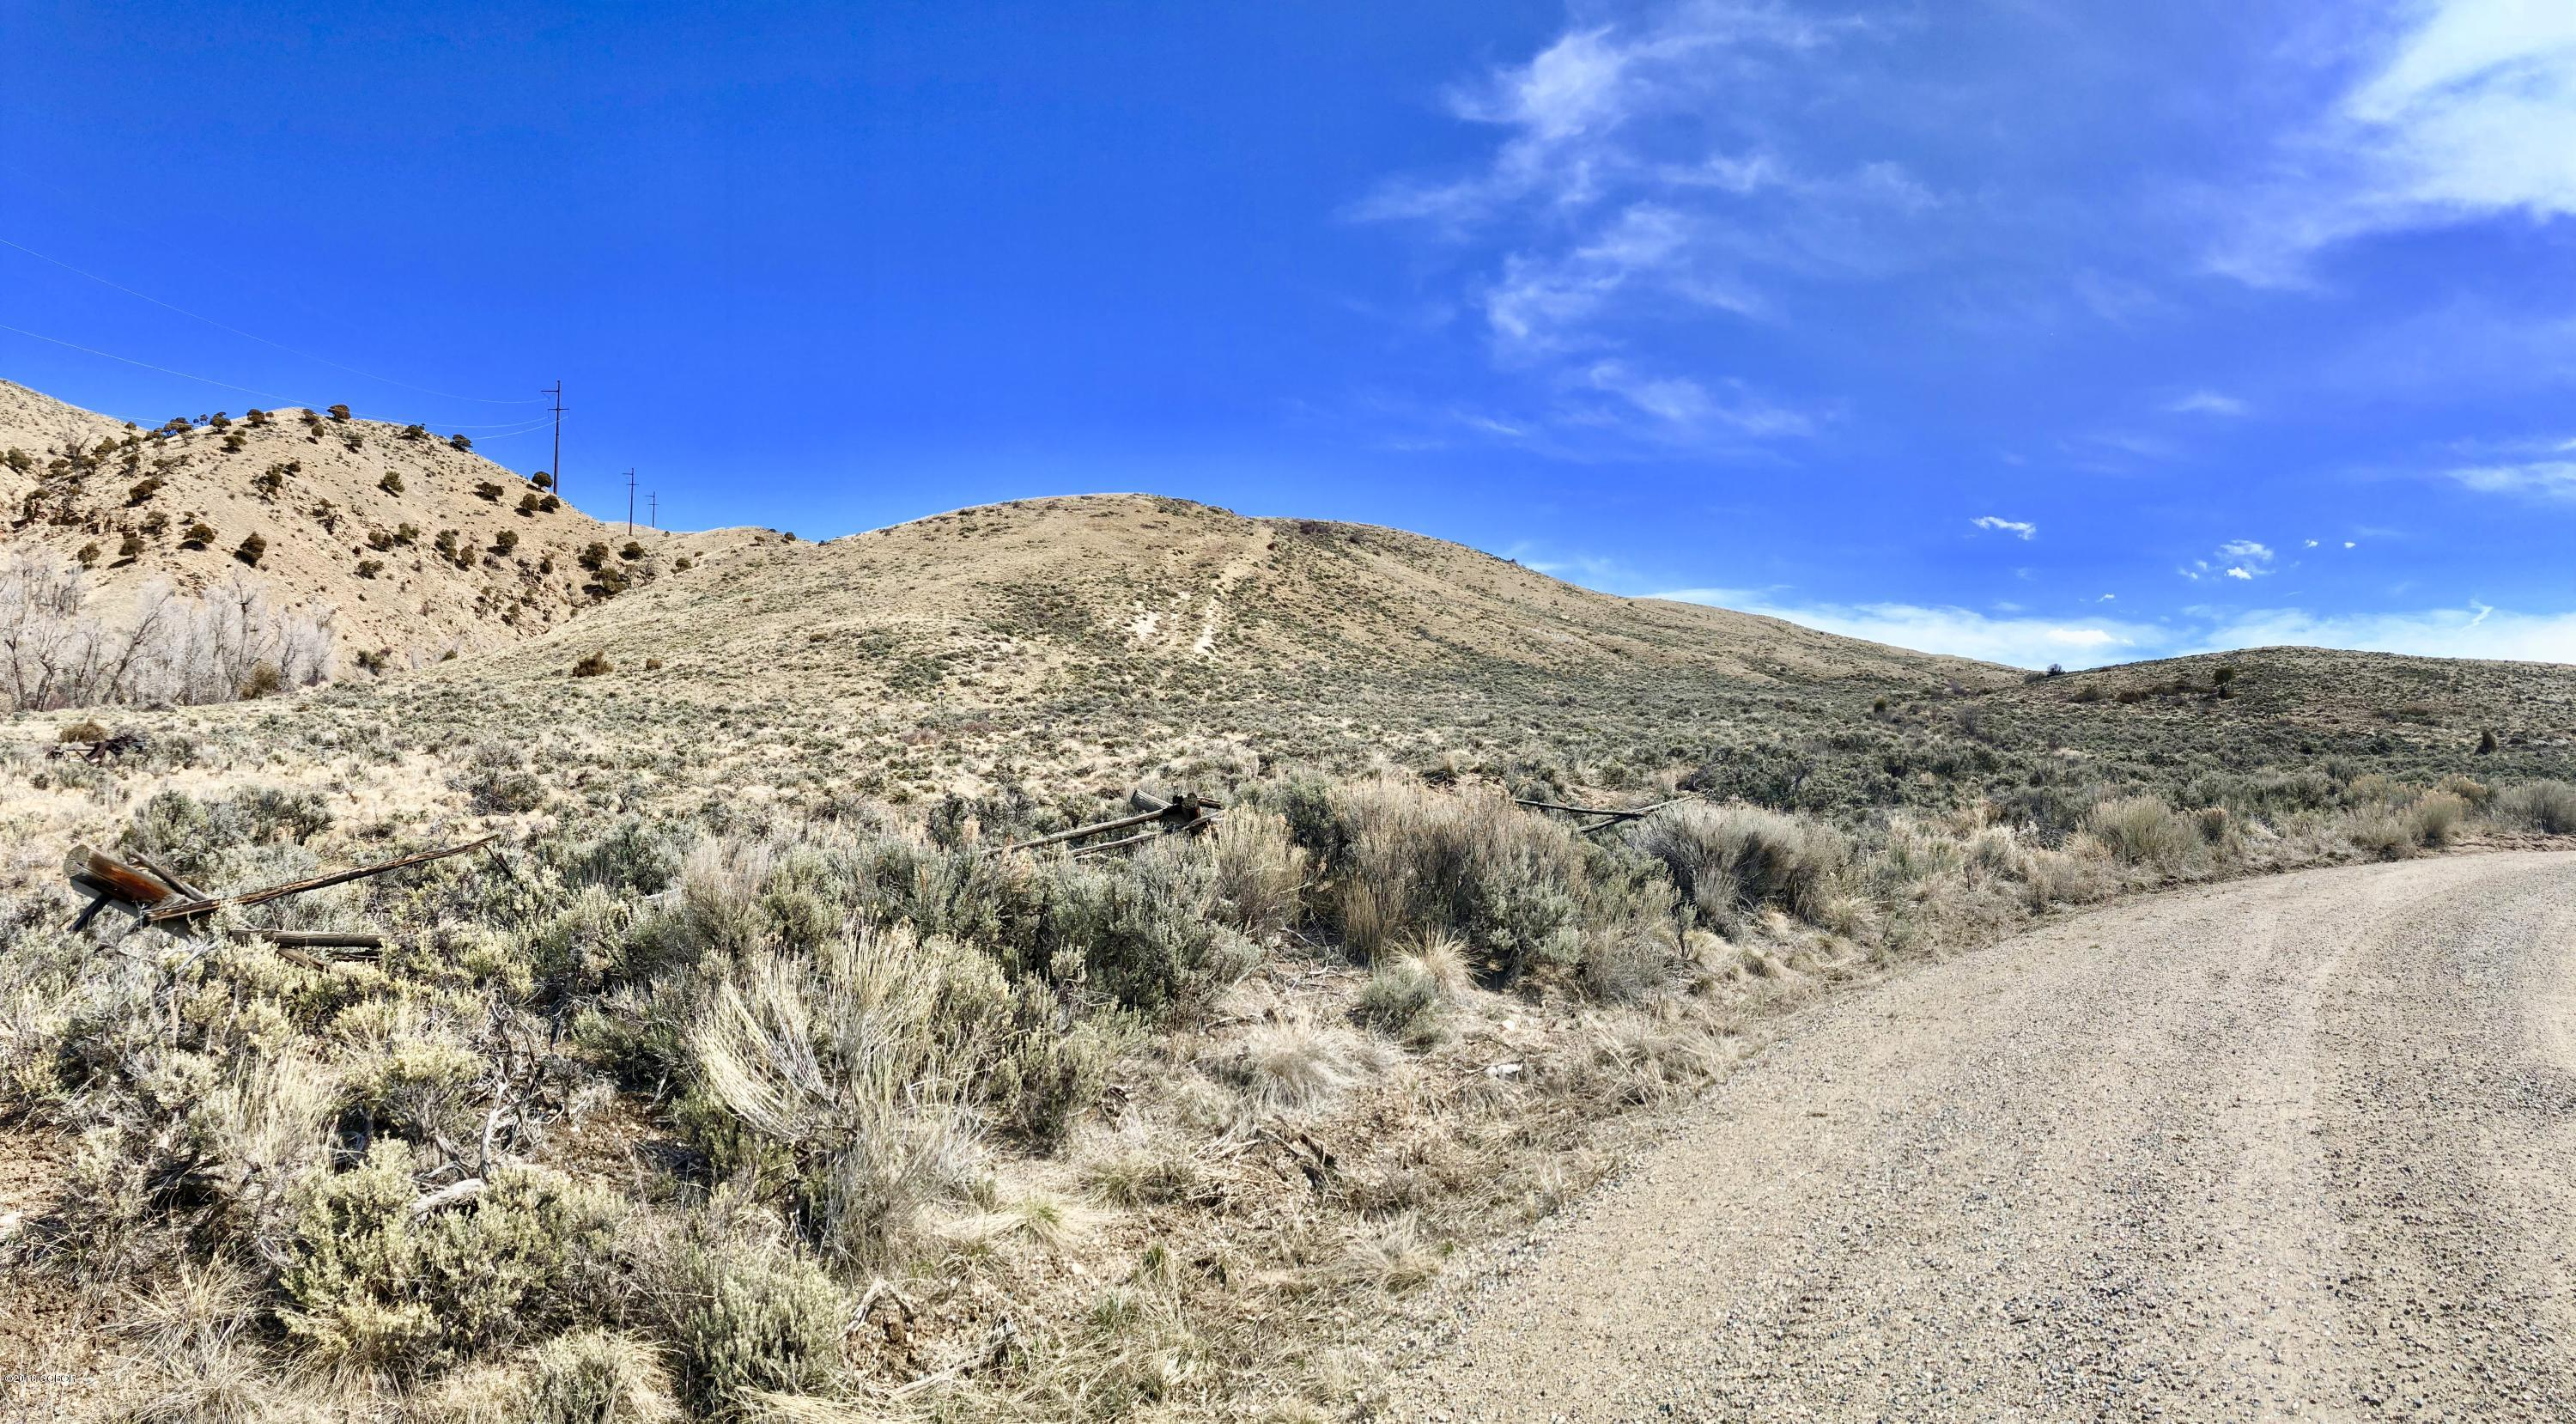 MLS# 18-361 - 1 - 175  Gcr 20, Parshall, CO 80468